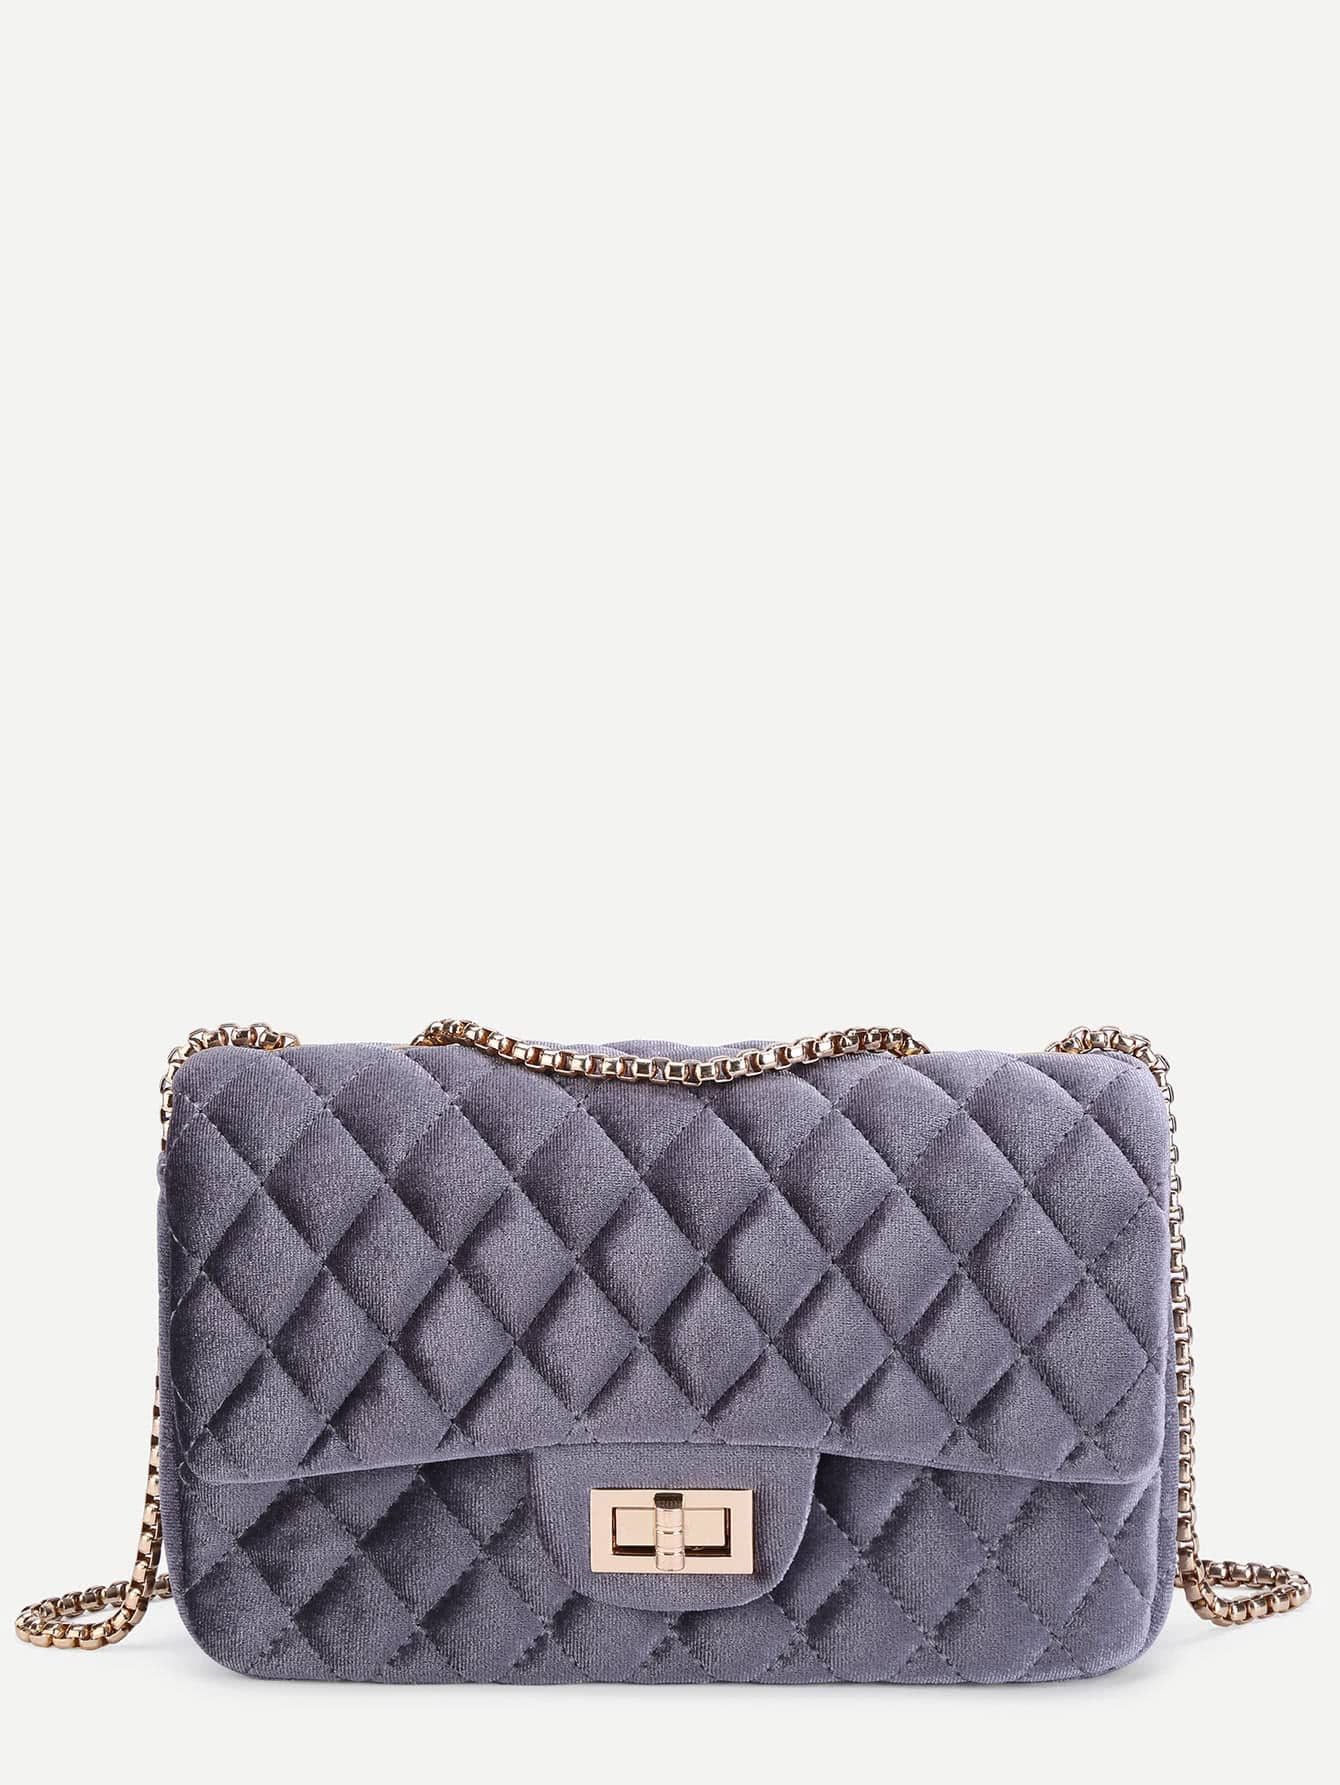 Twist Lock Quilted Velvet Chain Bag metal lock quilted crossbody chain bag